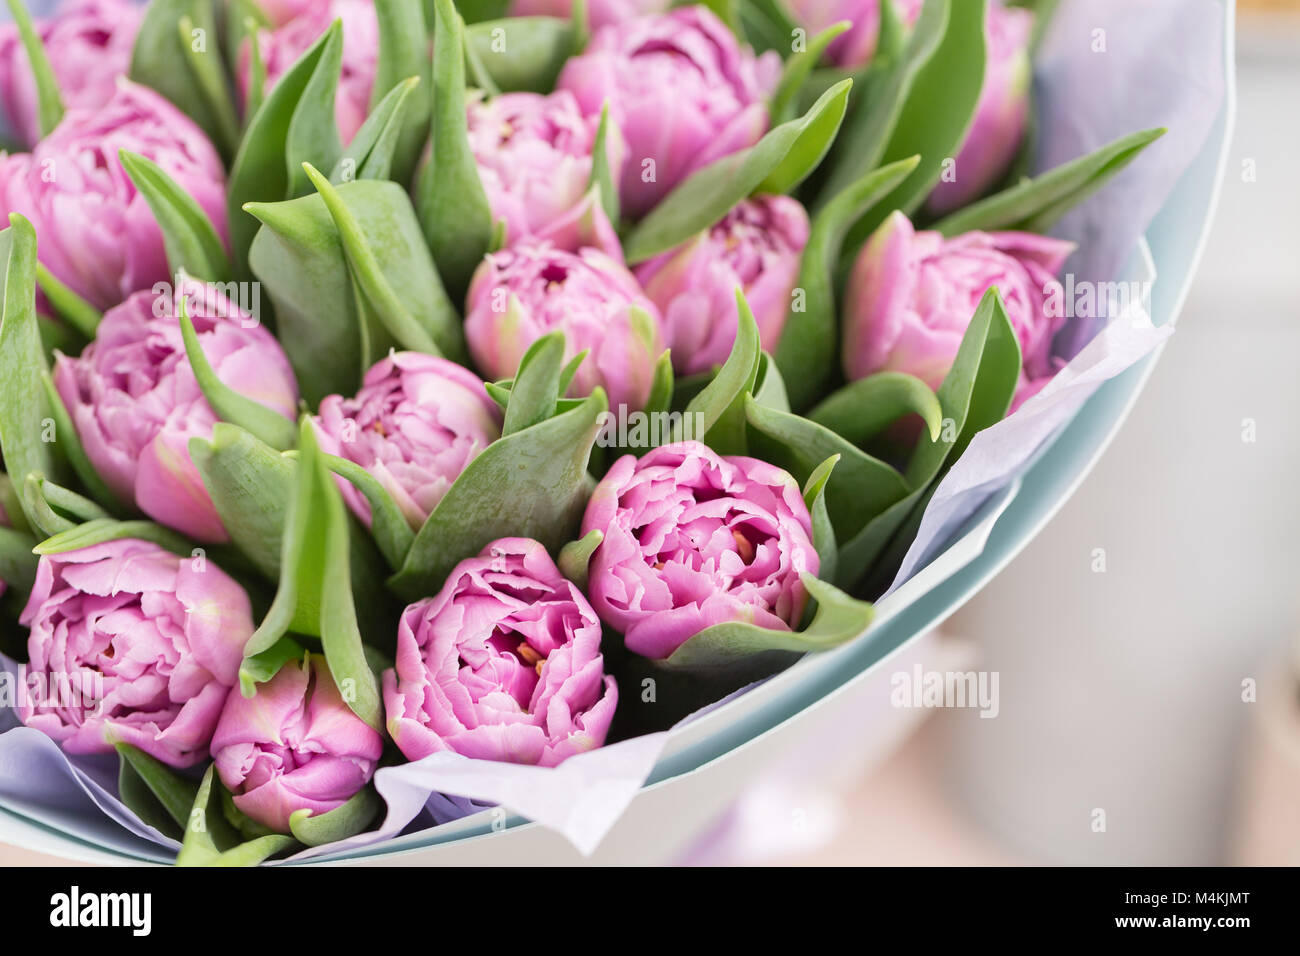 Close up beautiful luxury bouquet of lilac tulips flowers on table close up beautiful luxury bouquet of lilac tulips flowers on table the work of the florist at a flower shop izmirmasajfo